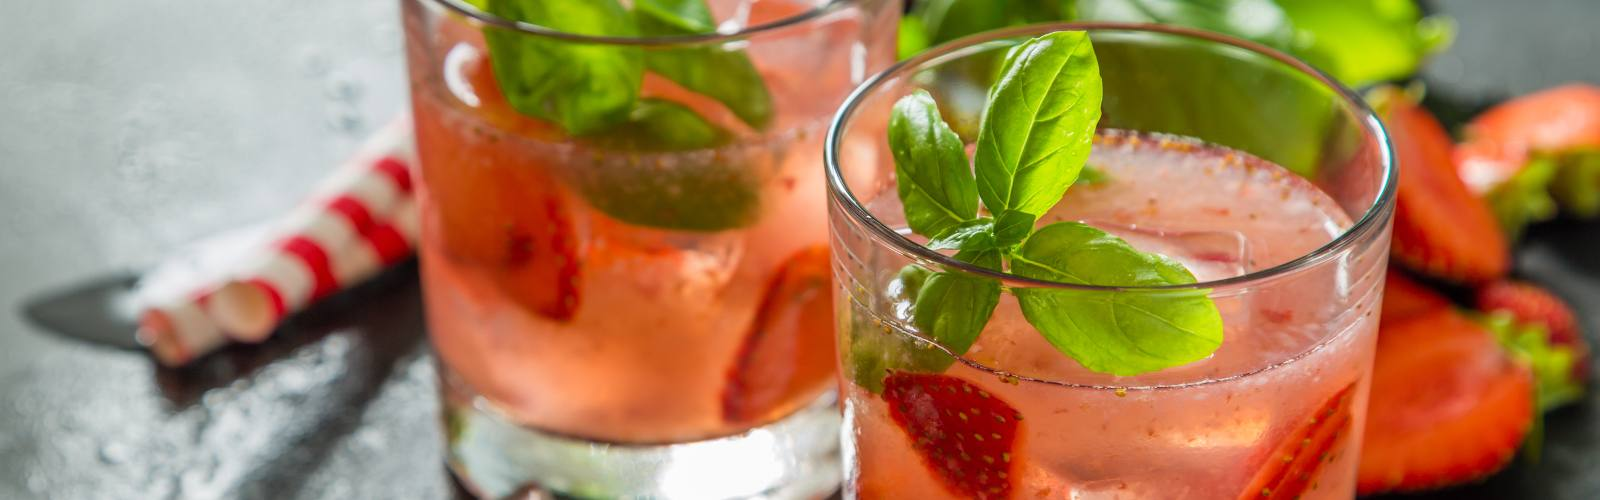 How to make your tap water tastier (and avoid plastic!)